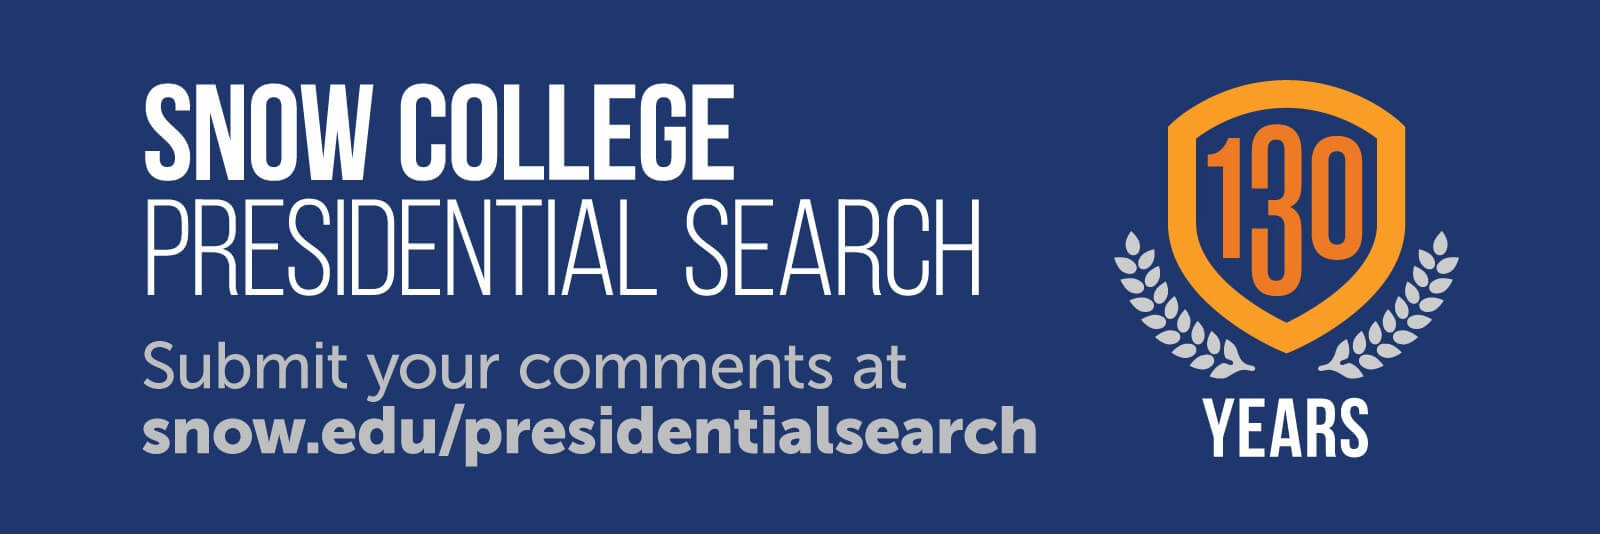 Submit your comments to the Presidential Search committee